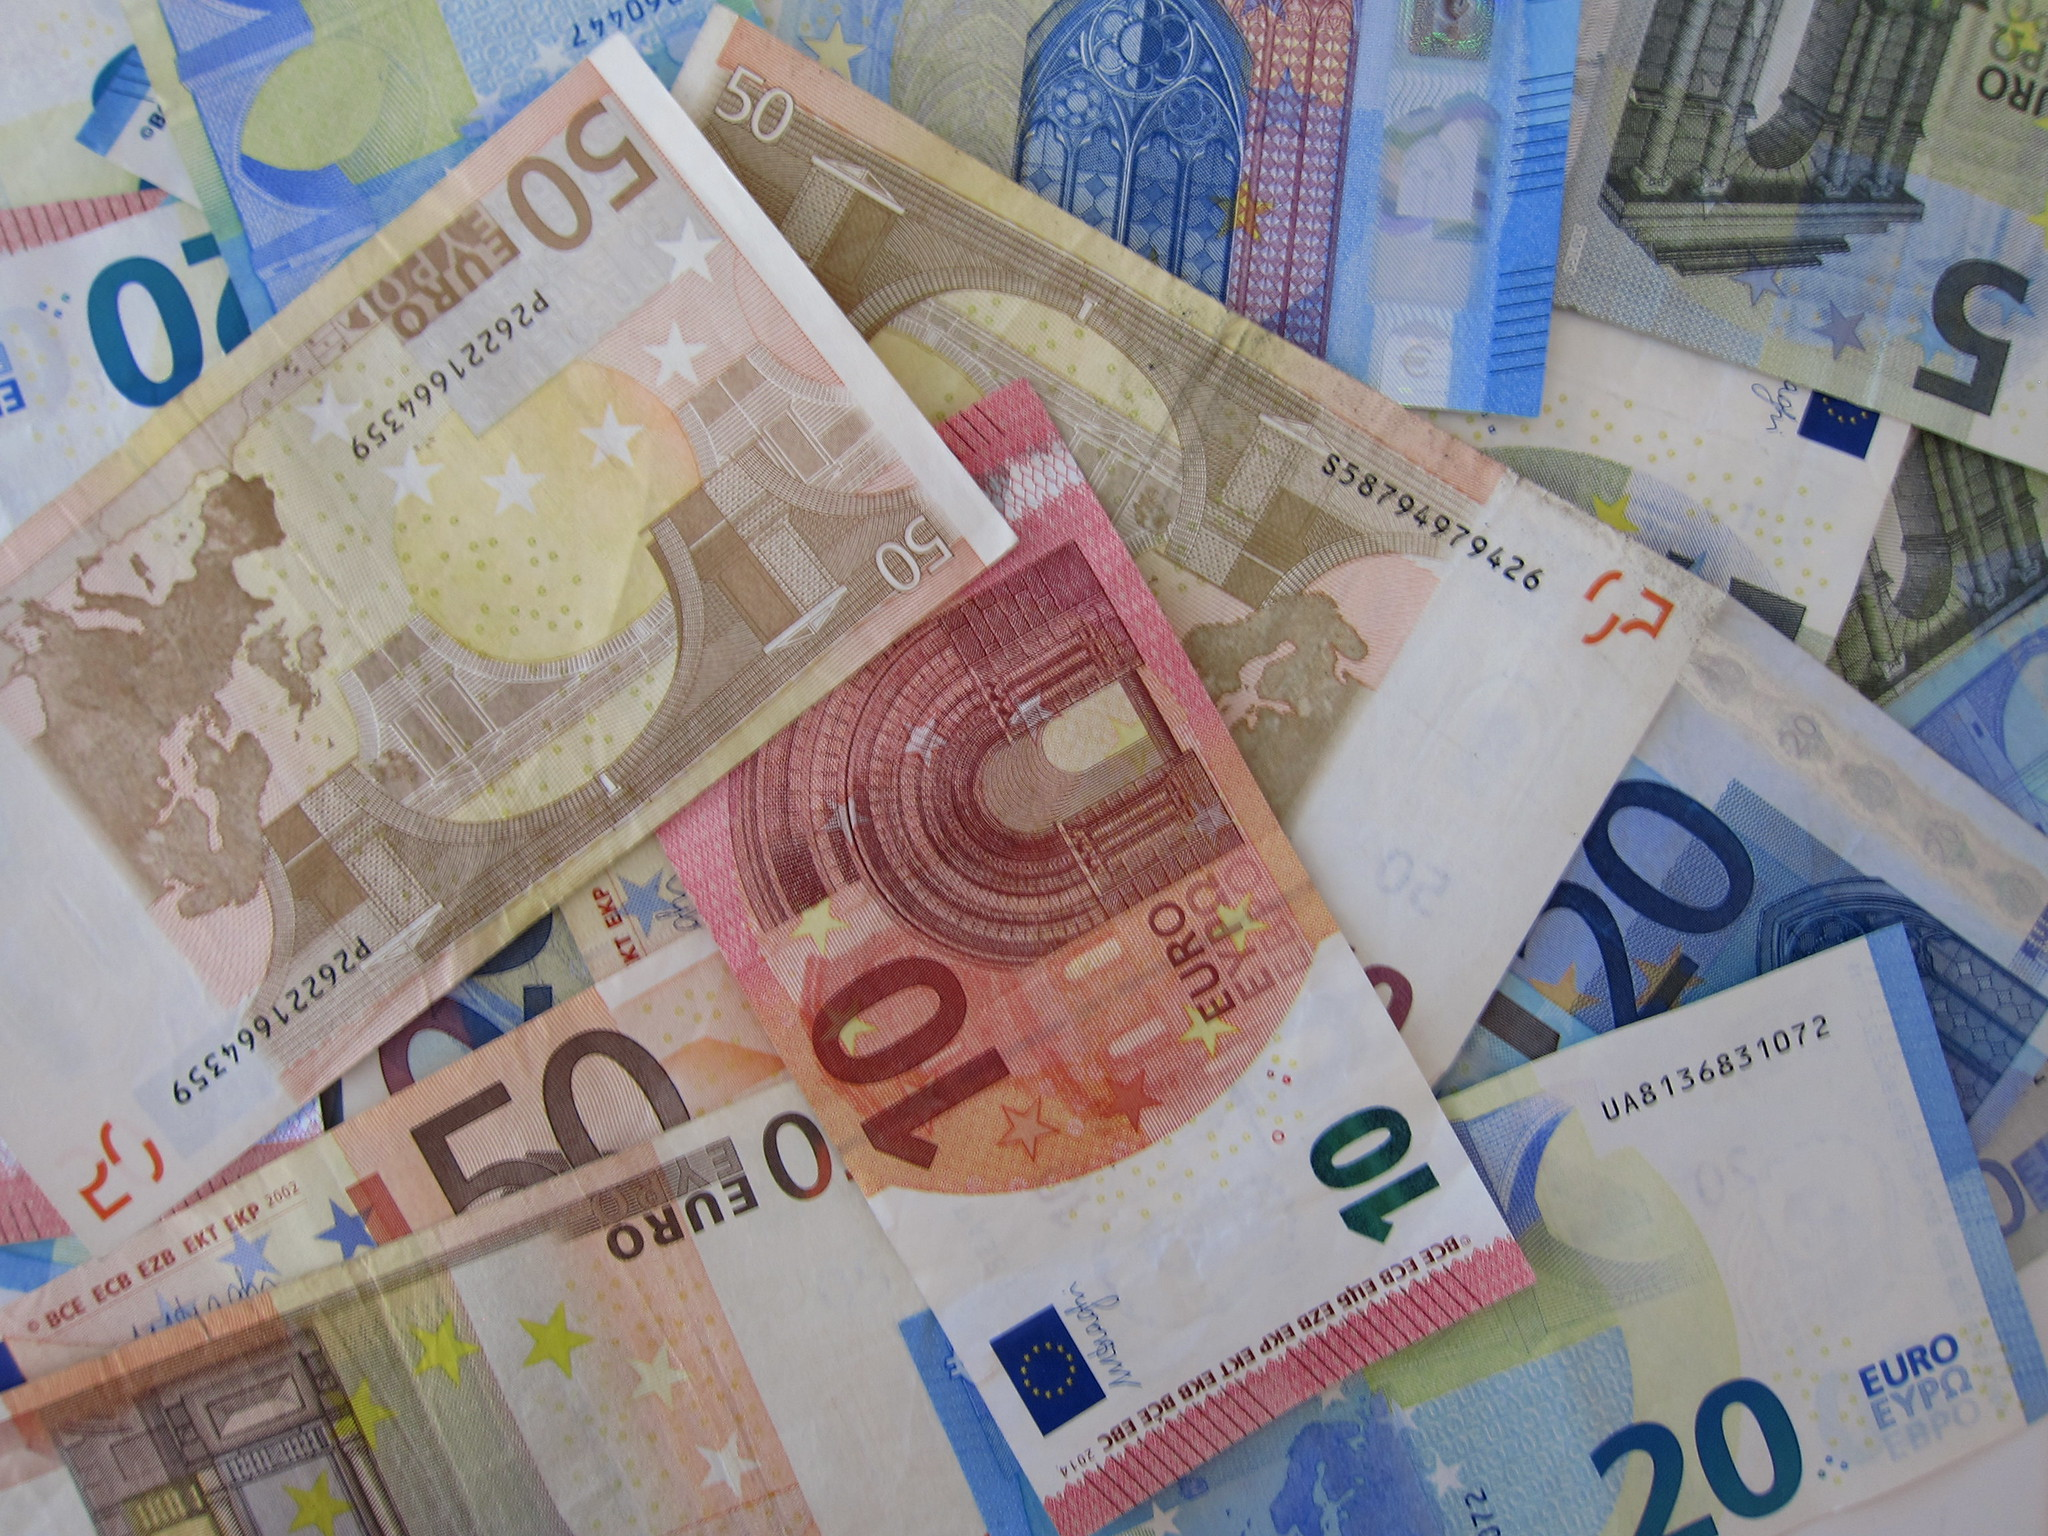 counterfeit currency networks in Madrid and Bogota